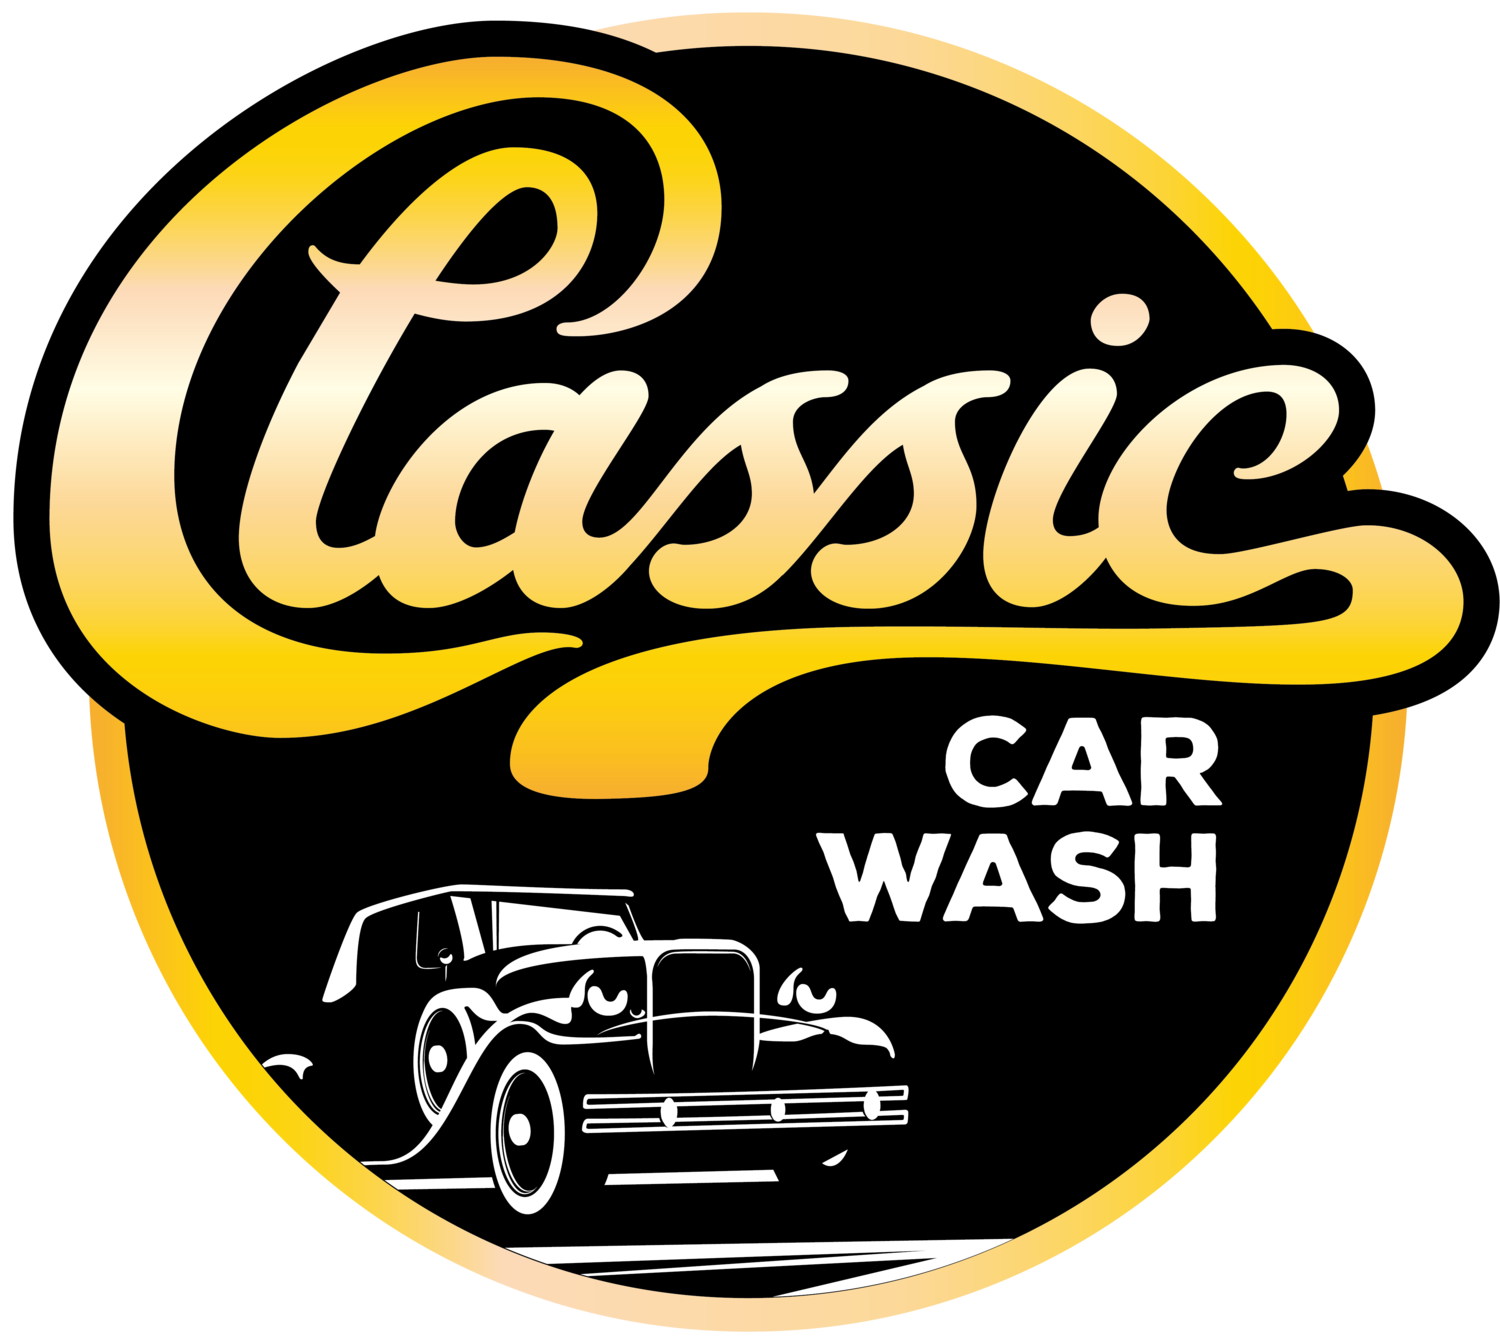 Car wash hose clipart jpg royalty free library carcare — Classic Car Wash jpg royalty free library